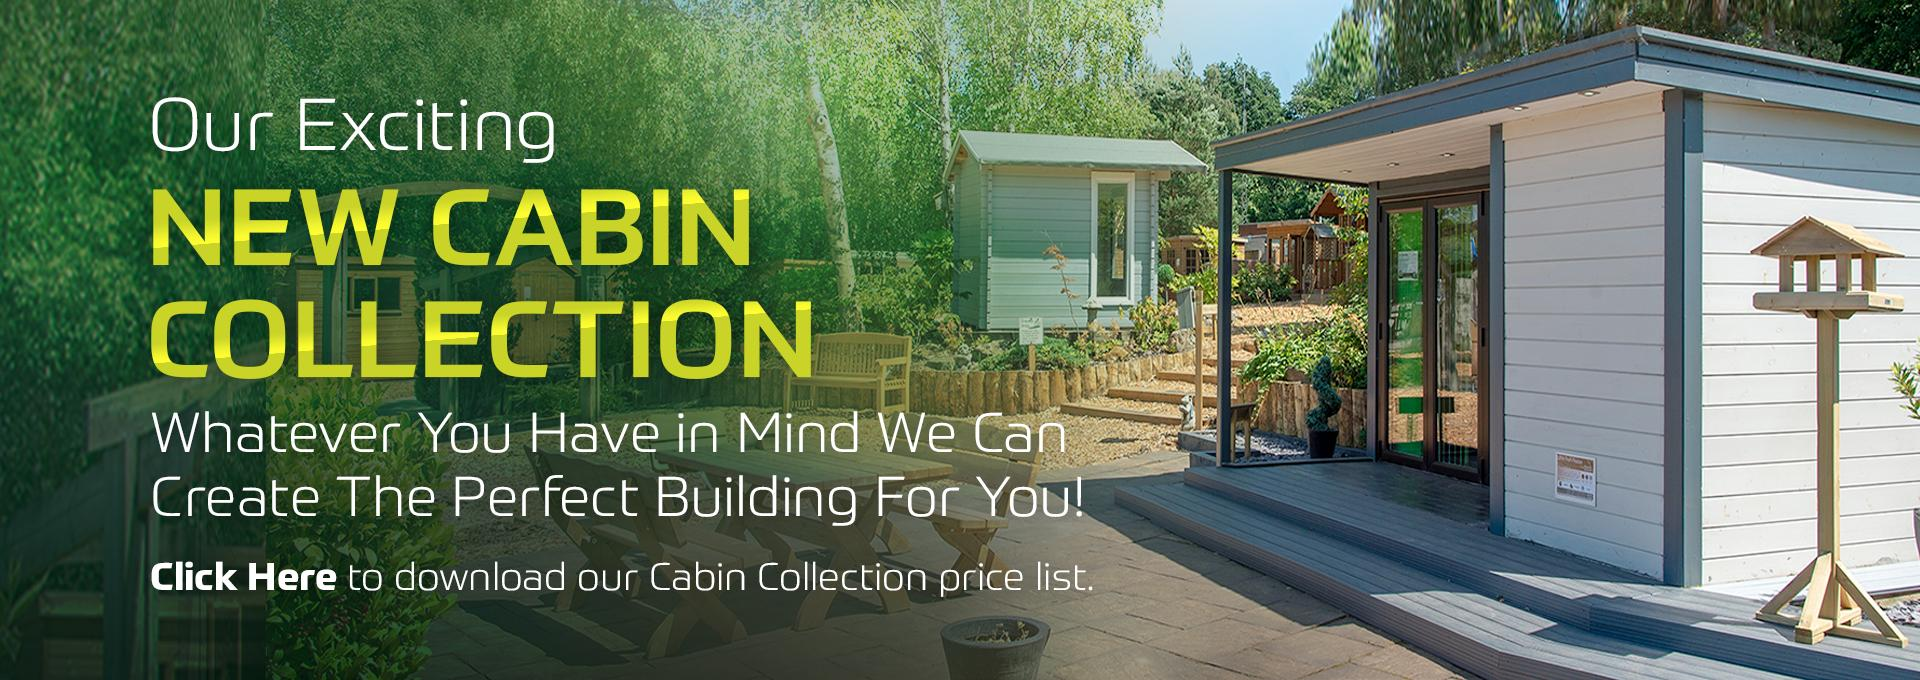 New cabin collection at earnshaws fencing centres